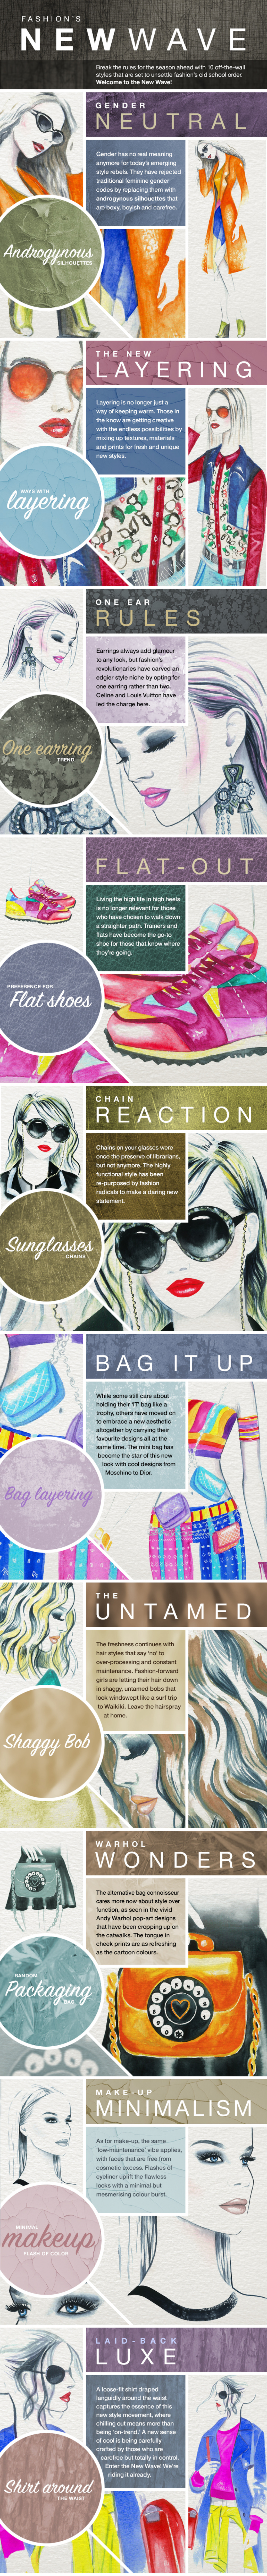 Fashion's New Wave Infographic